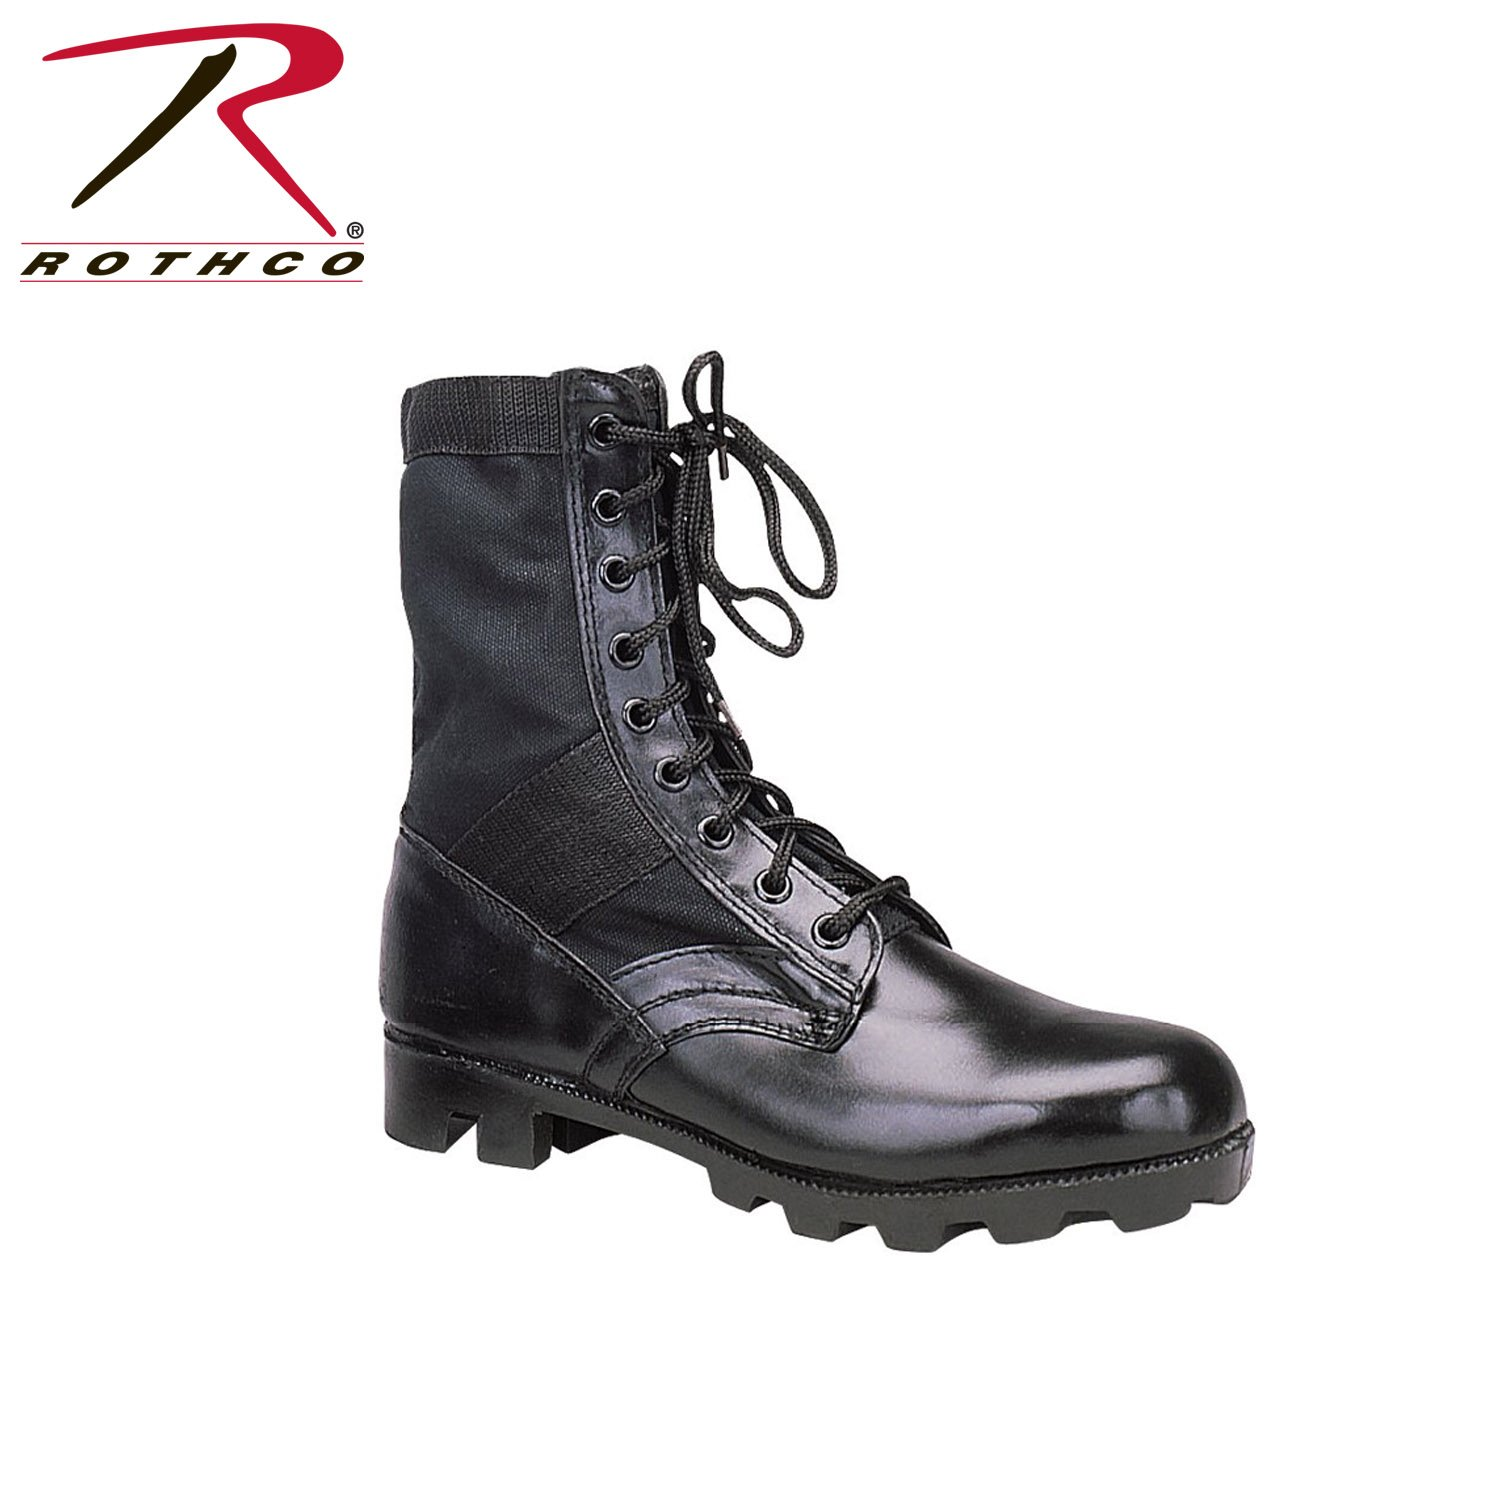 Rothco 8'' GI Type Jungle Boot, Black, 10